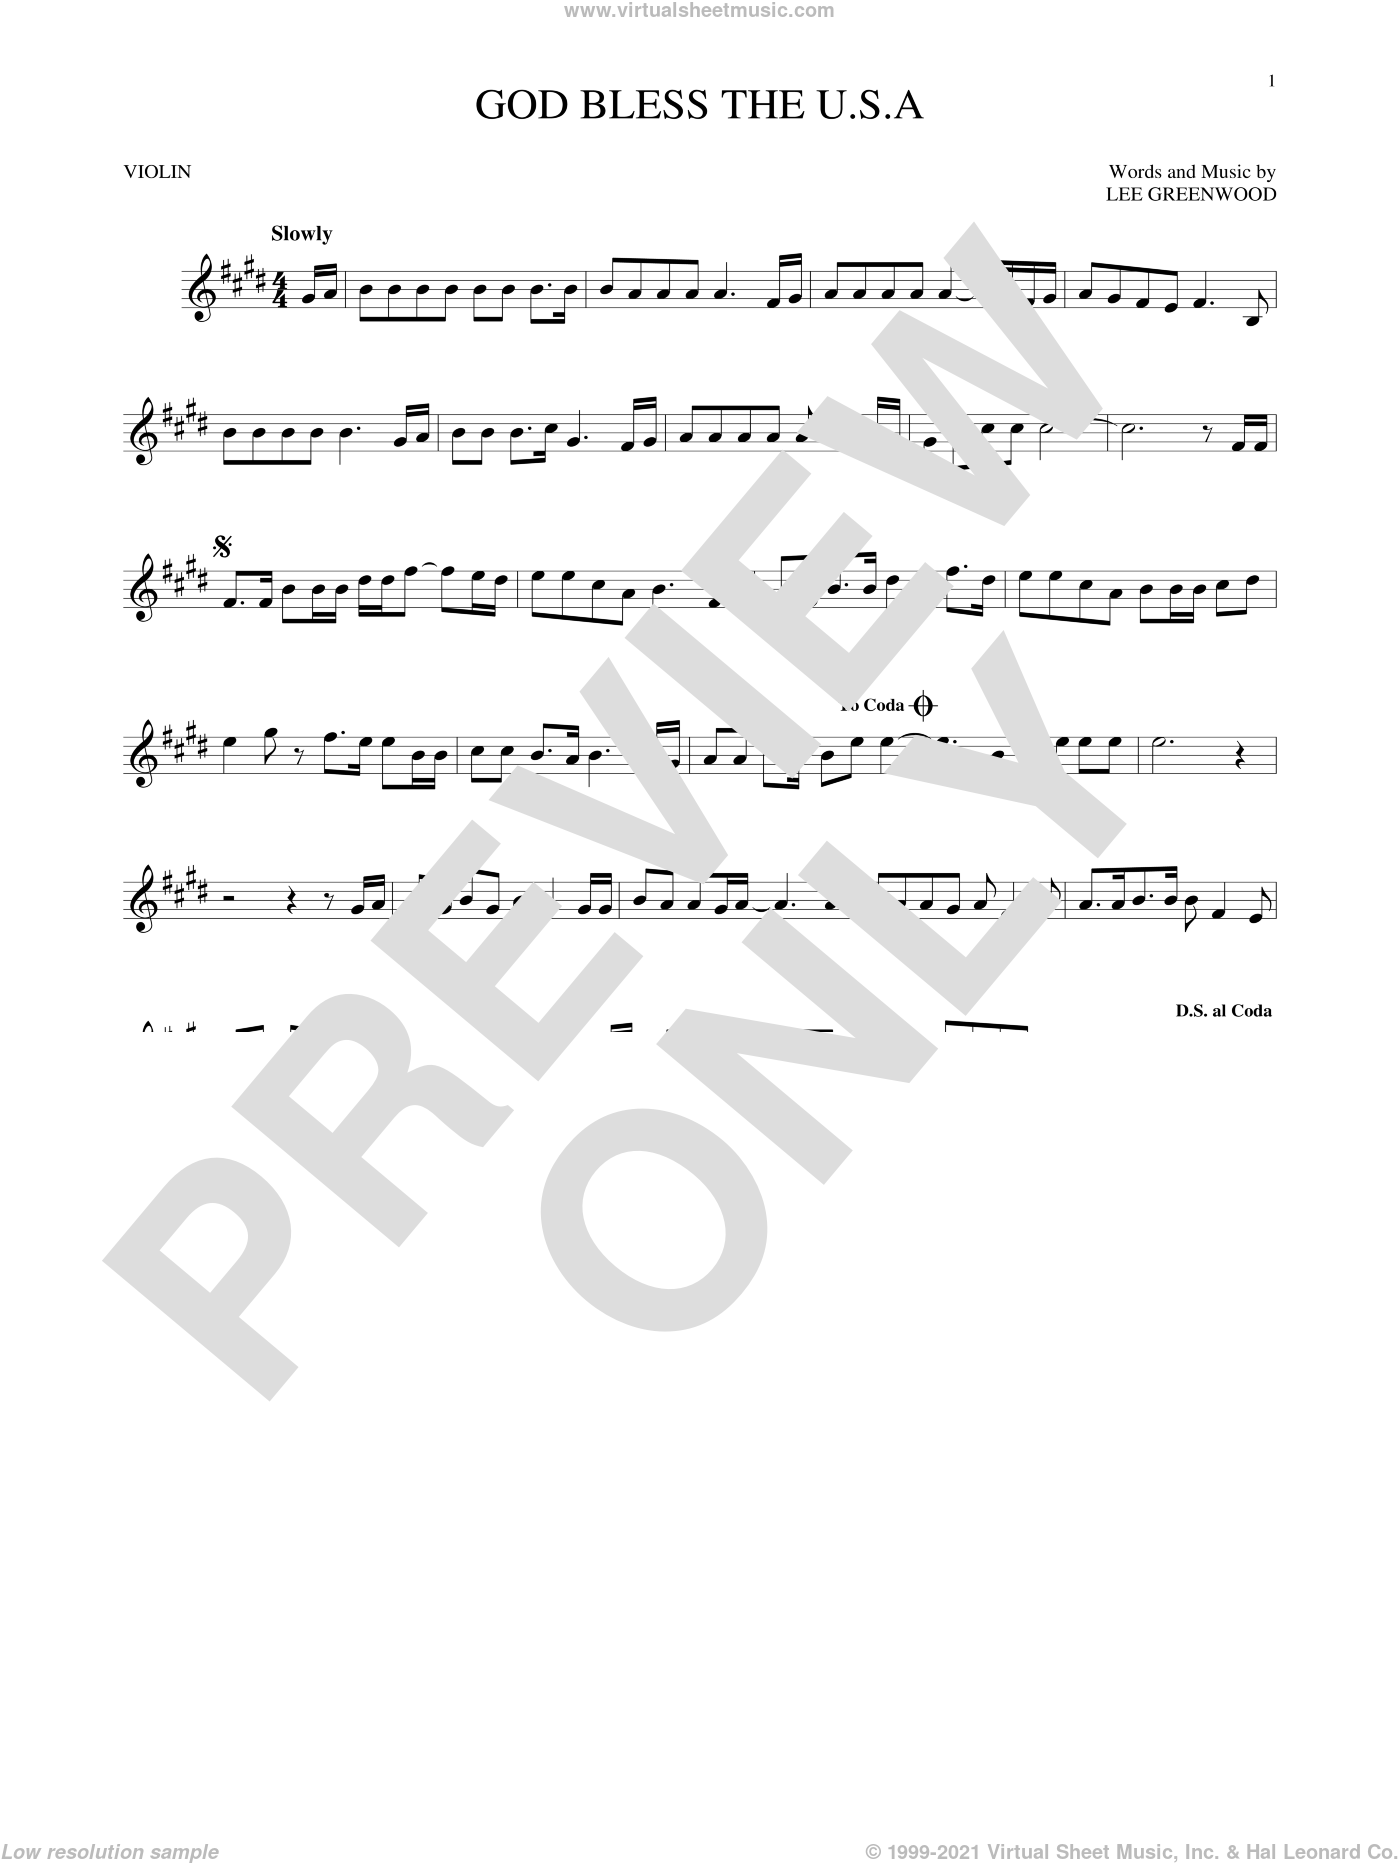 God Bless The U.S.A. sheet music for violin solo by Lee Greenwood. Score Image Preview.